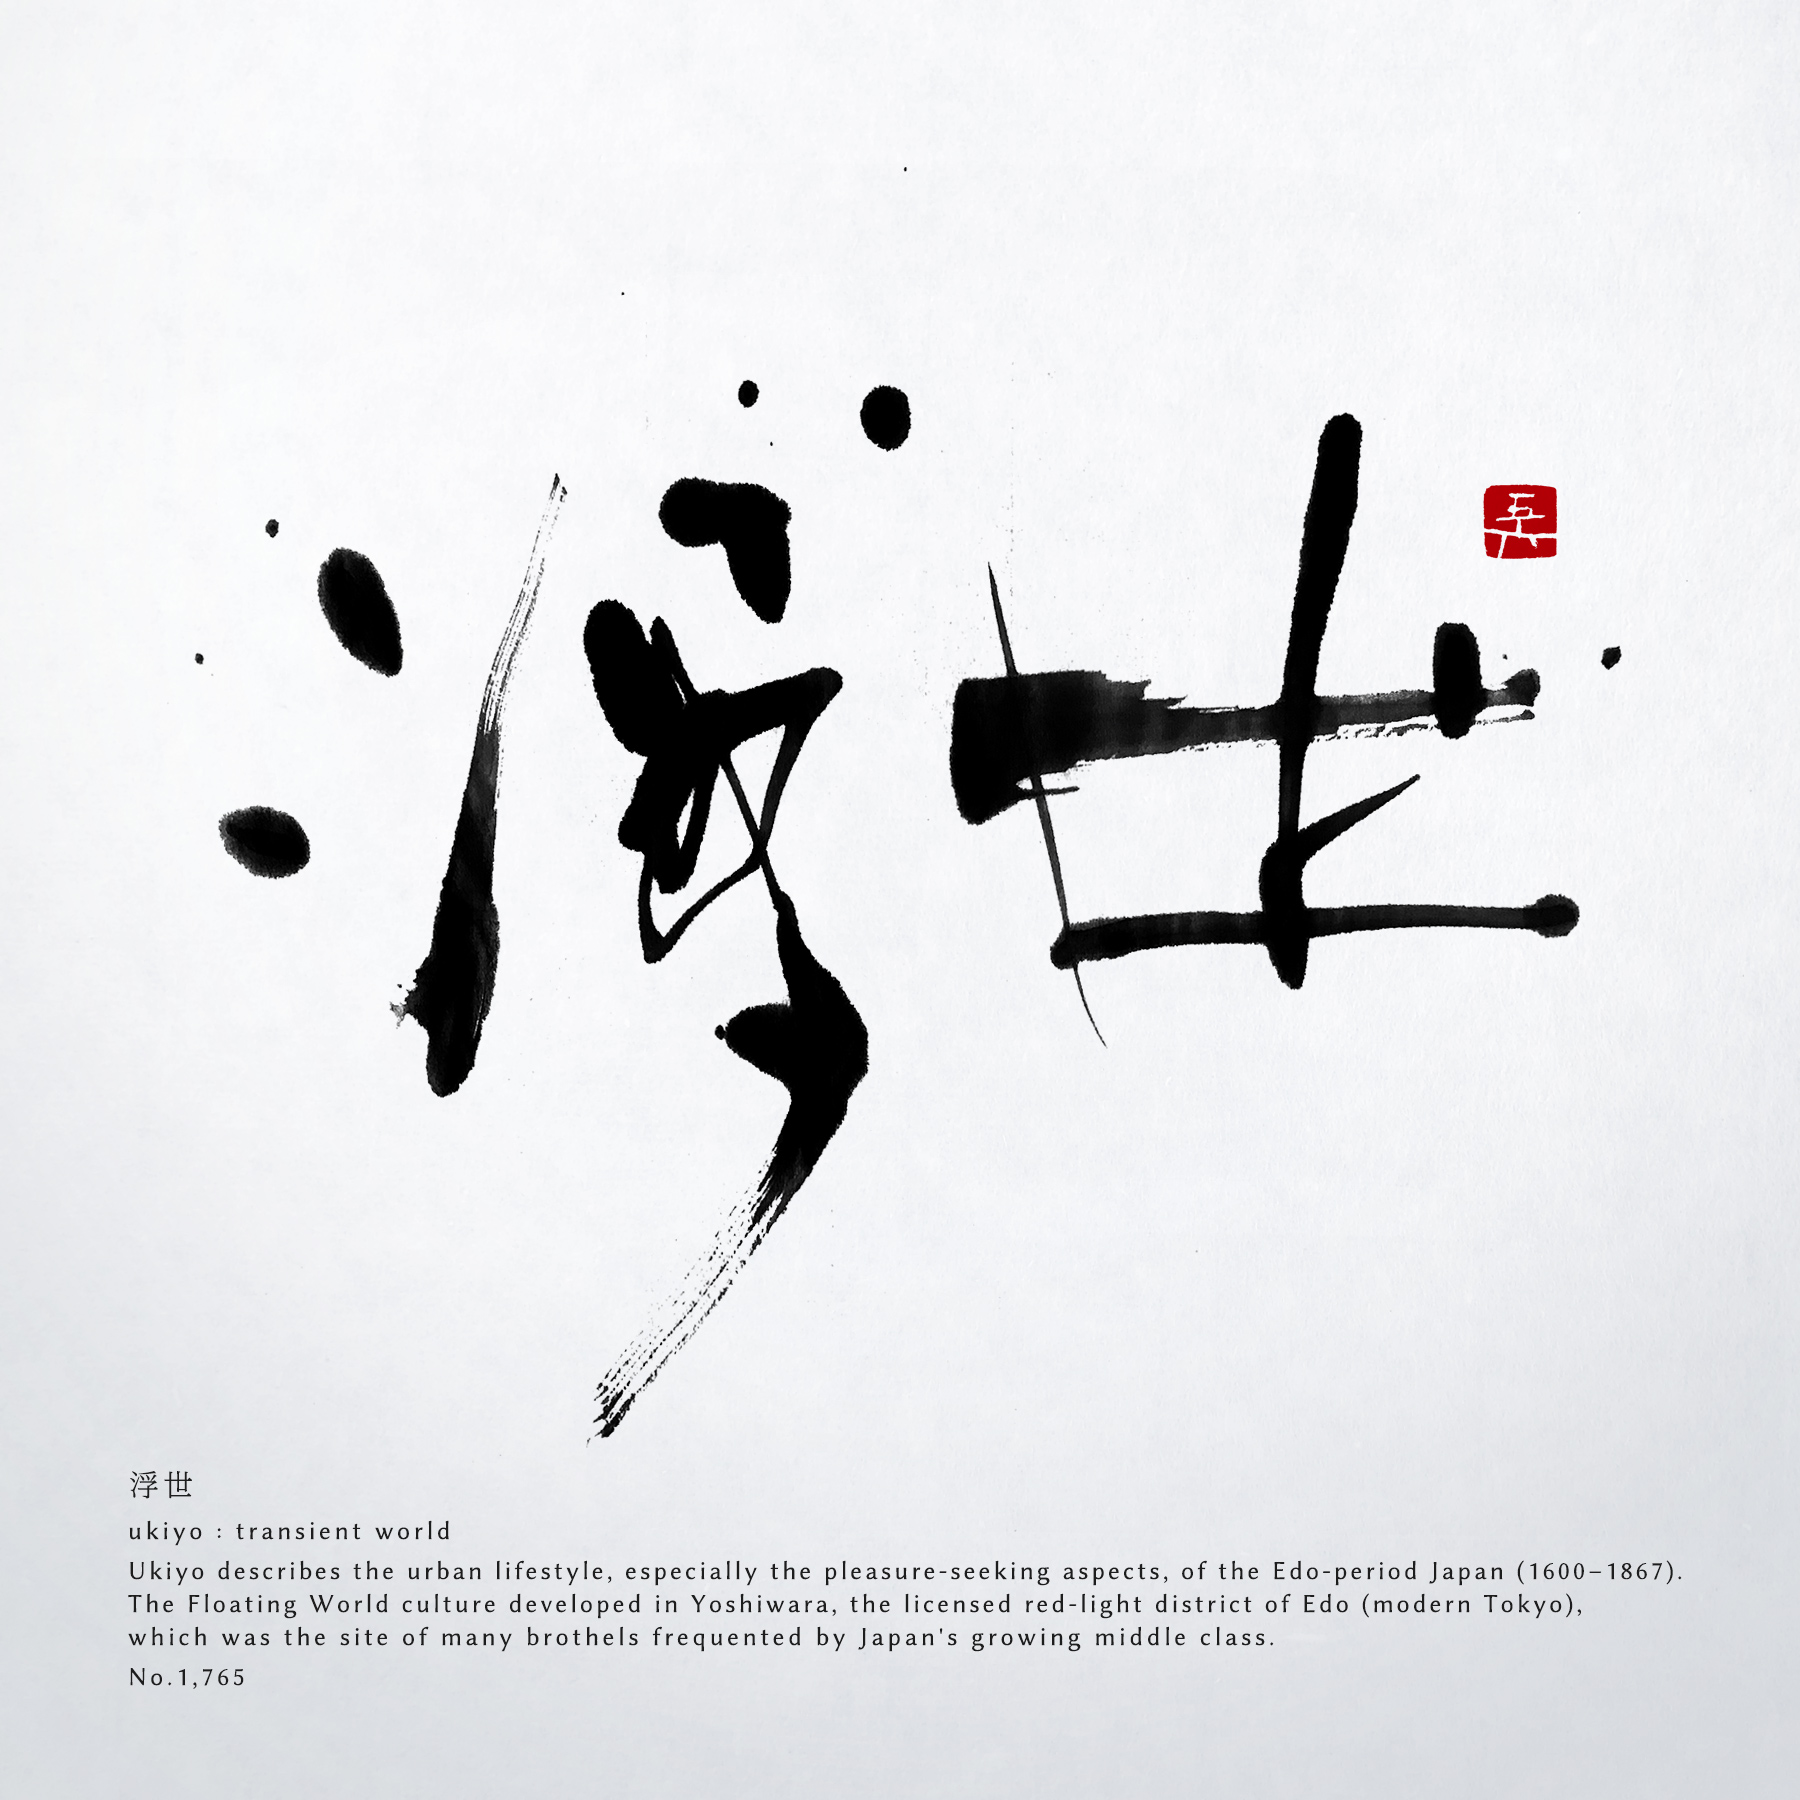 浮世 | transient world 書道作品 japaneseart japanese calligraphy 書家 田川悟郎 Goroh Tagawa